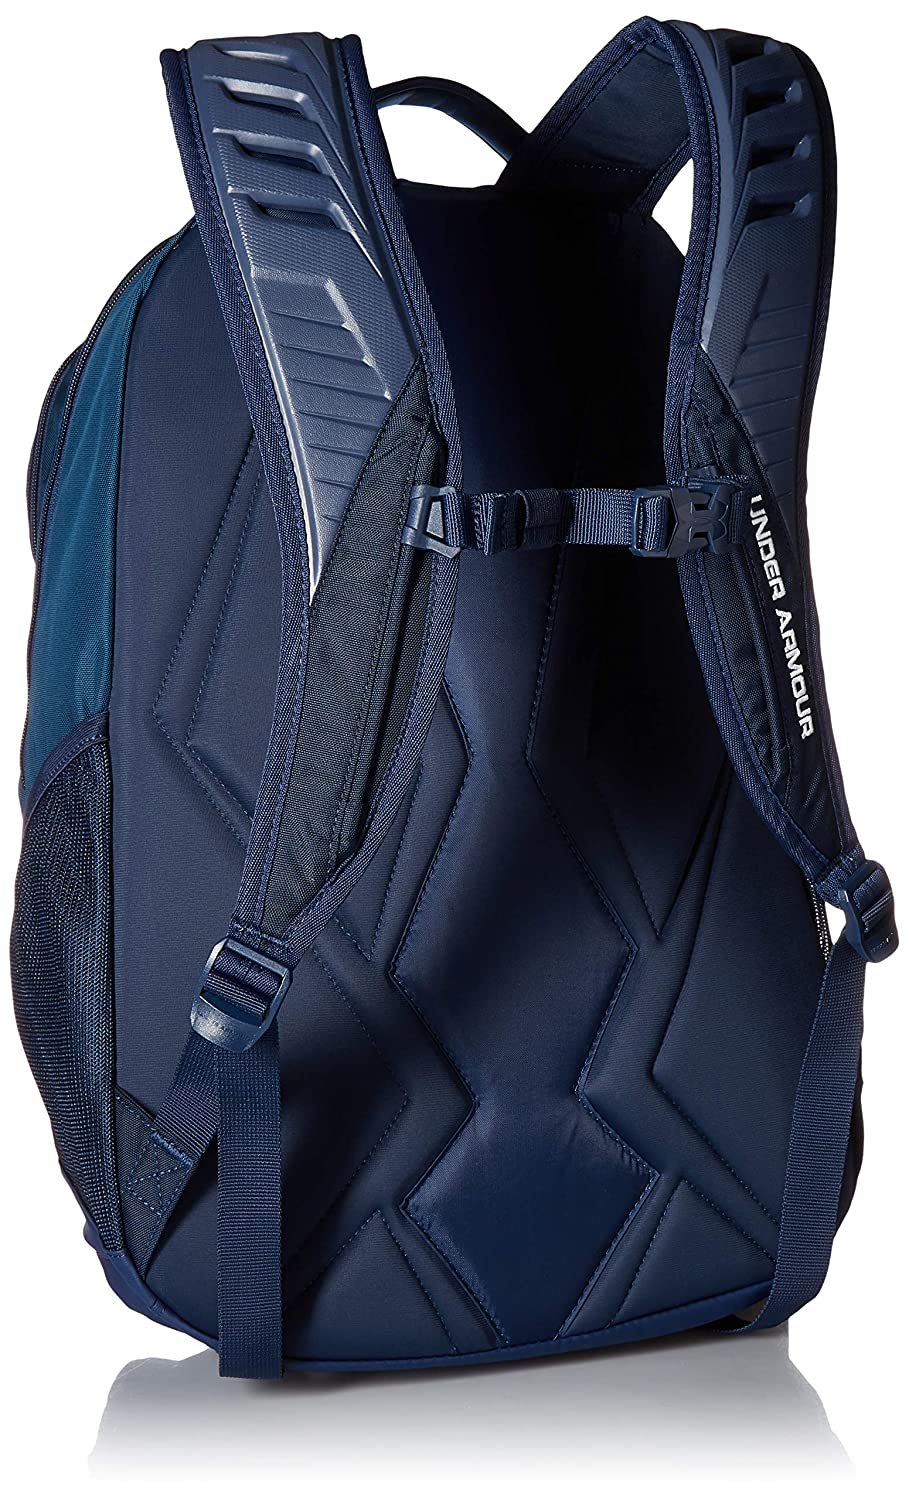 5eeb4de5e430 Amazon.com  Under Armour Storm Contender Backpack  Sports   Outdoors